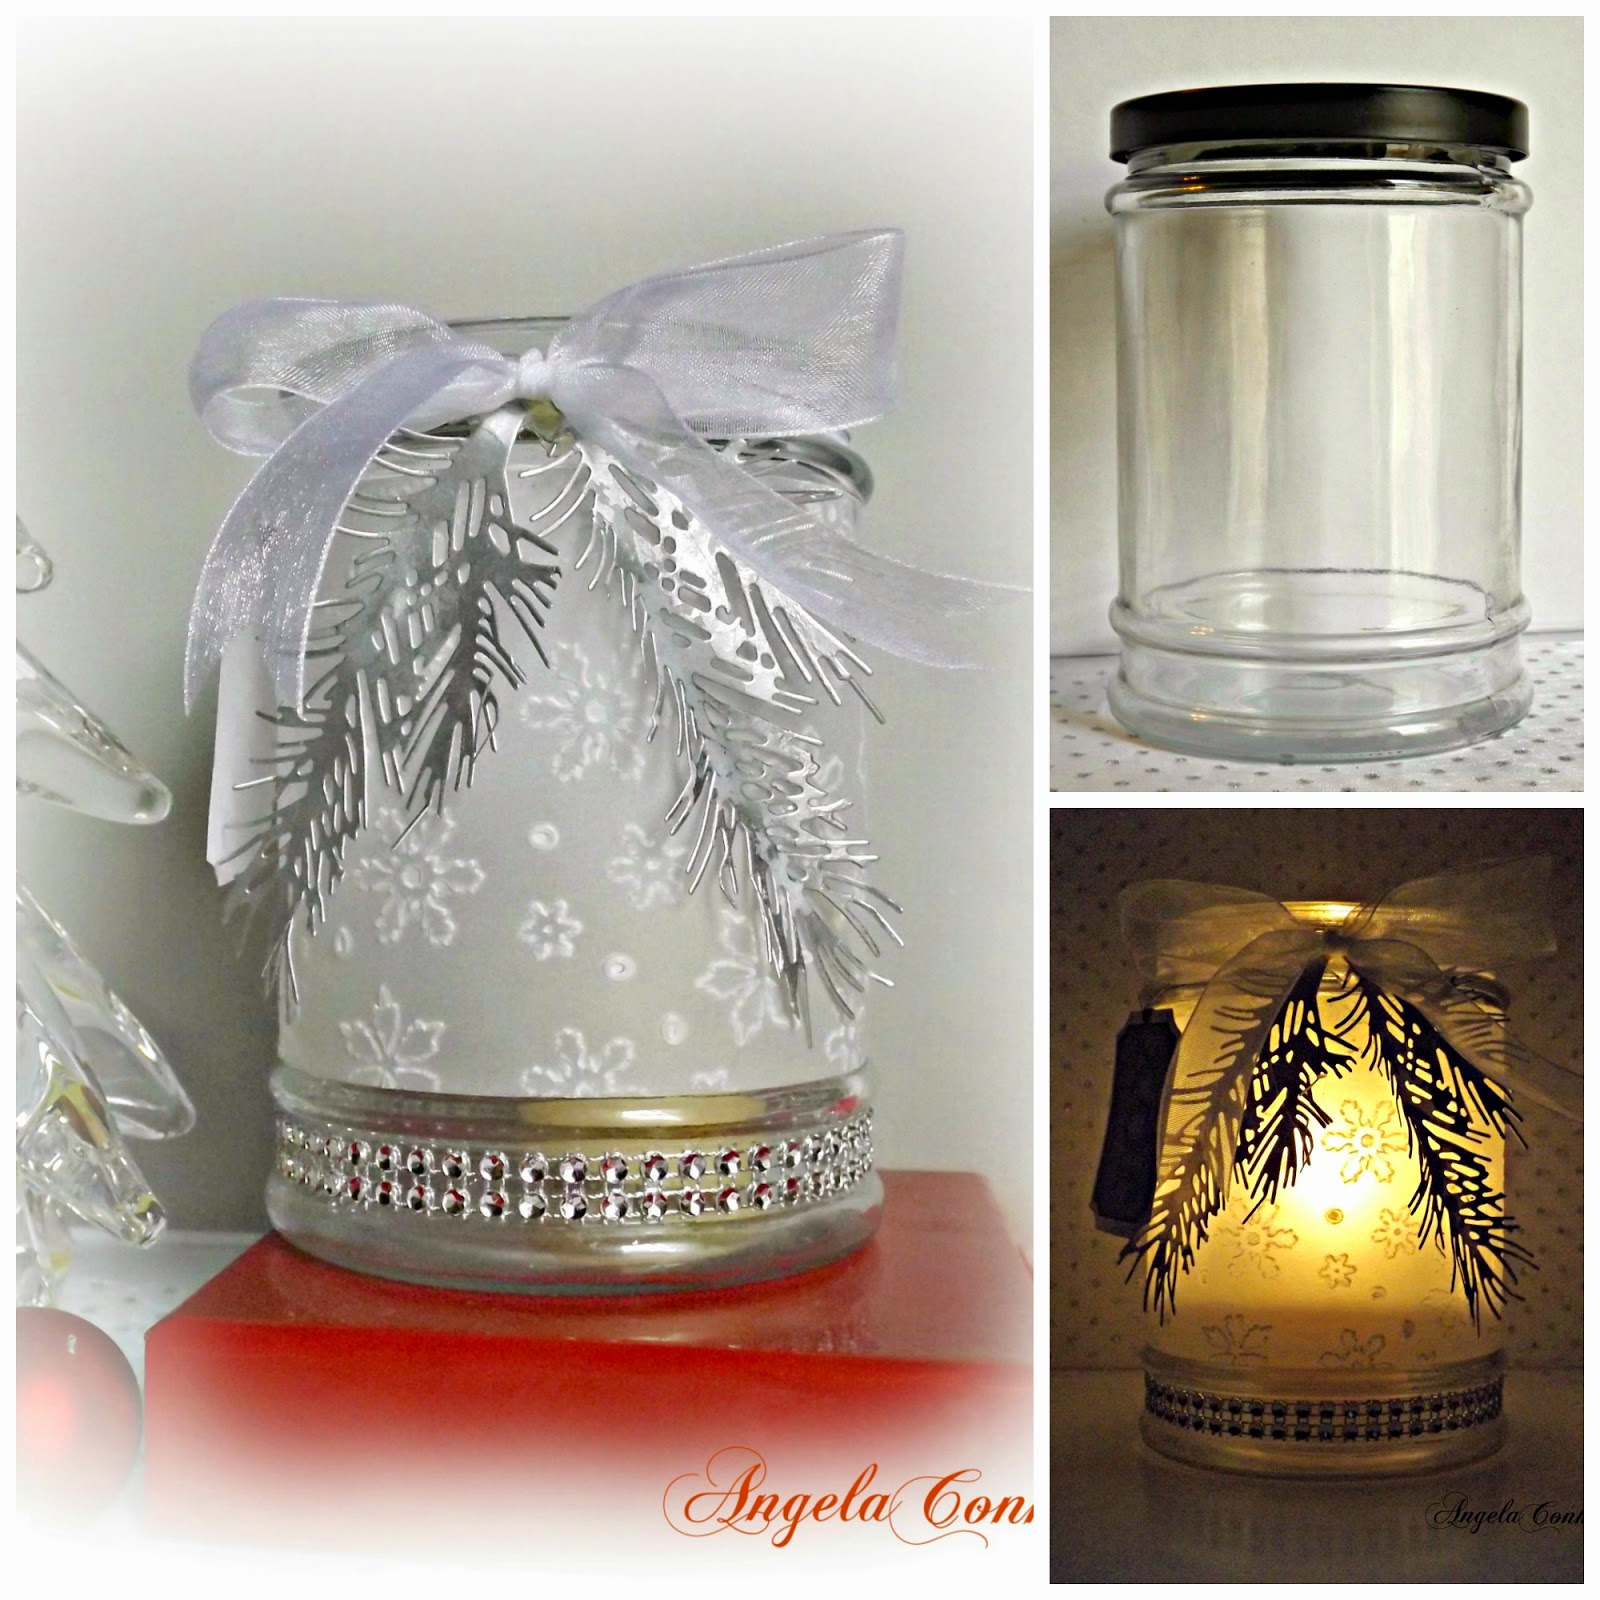 Repurpose or Alter an Old Candle Jar and a Soup Can